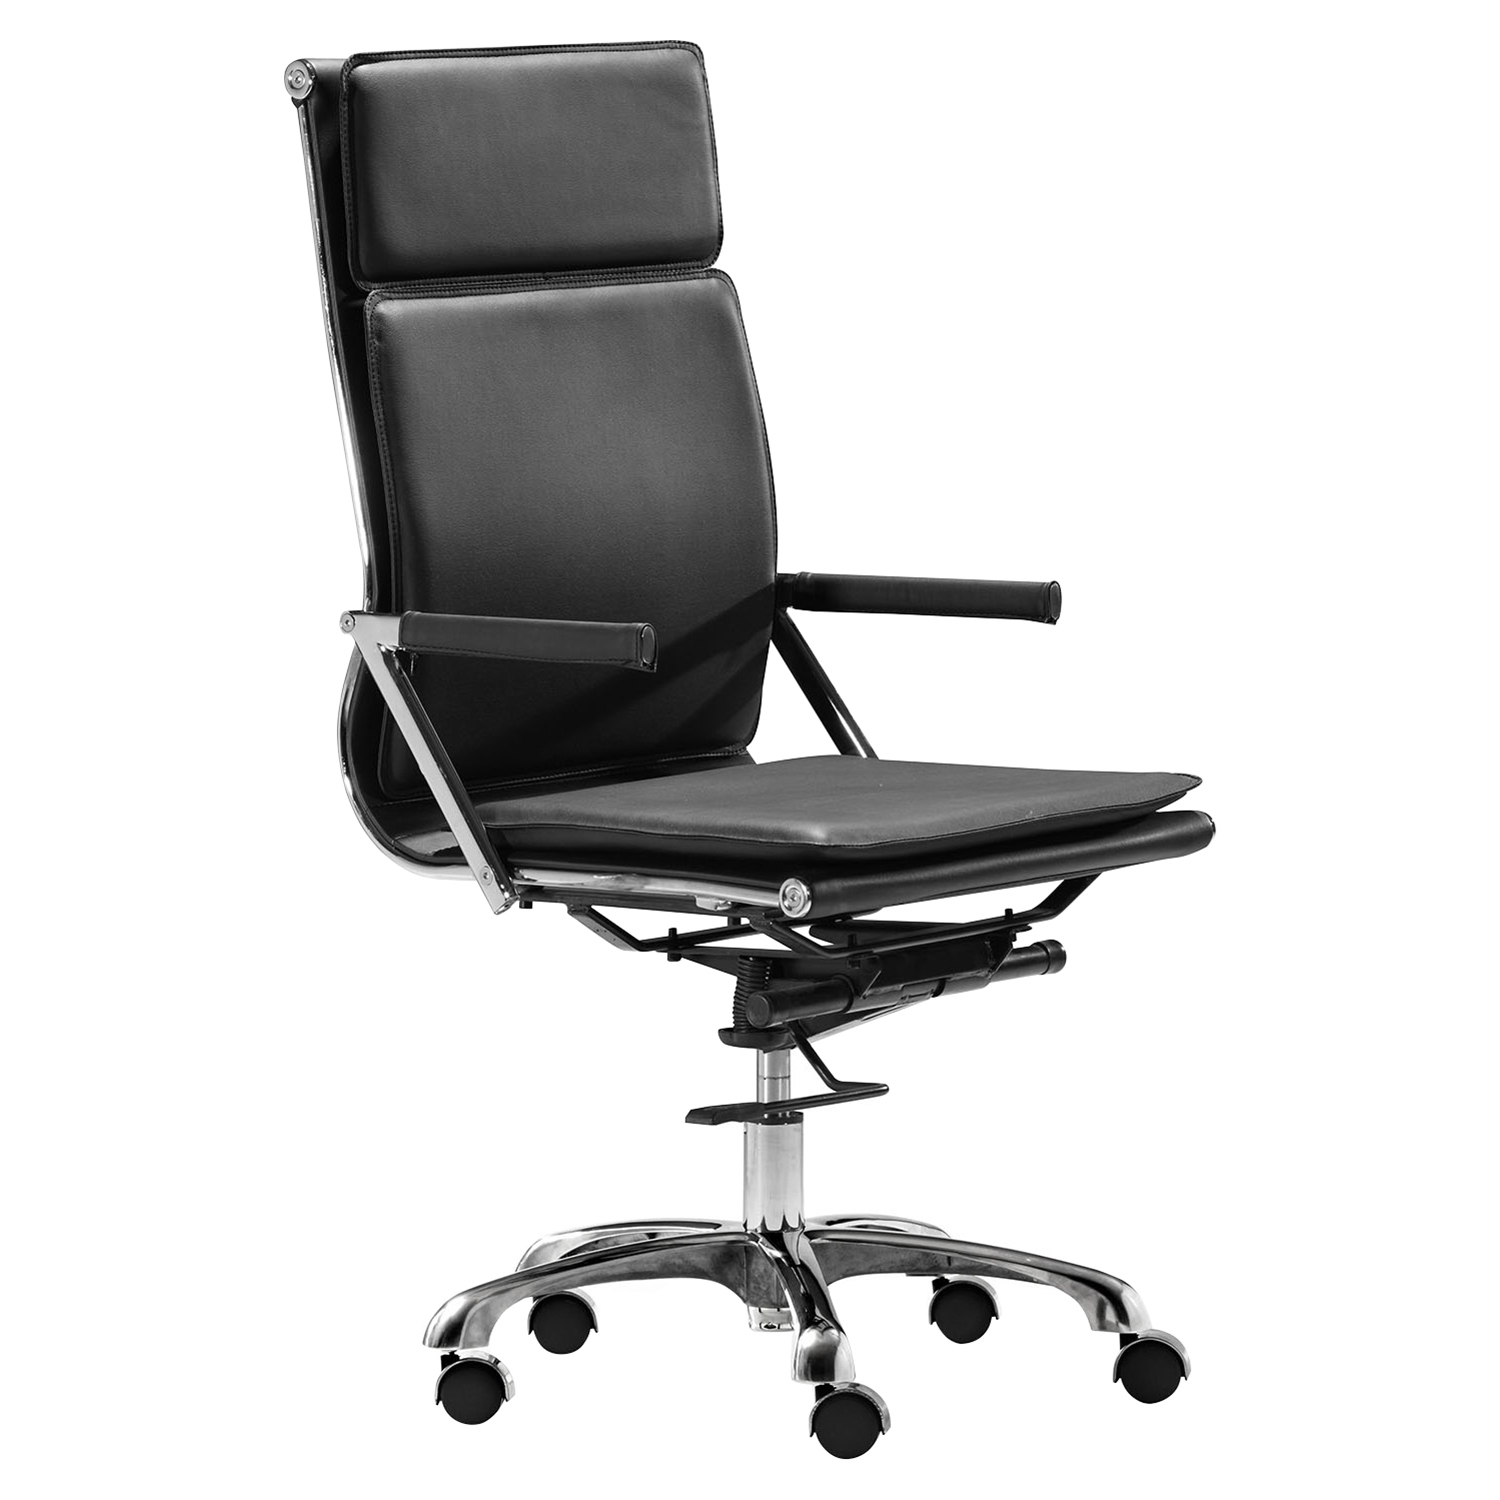 Lider Plus High Back Office Chair - Black